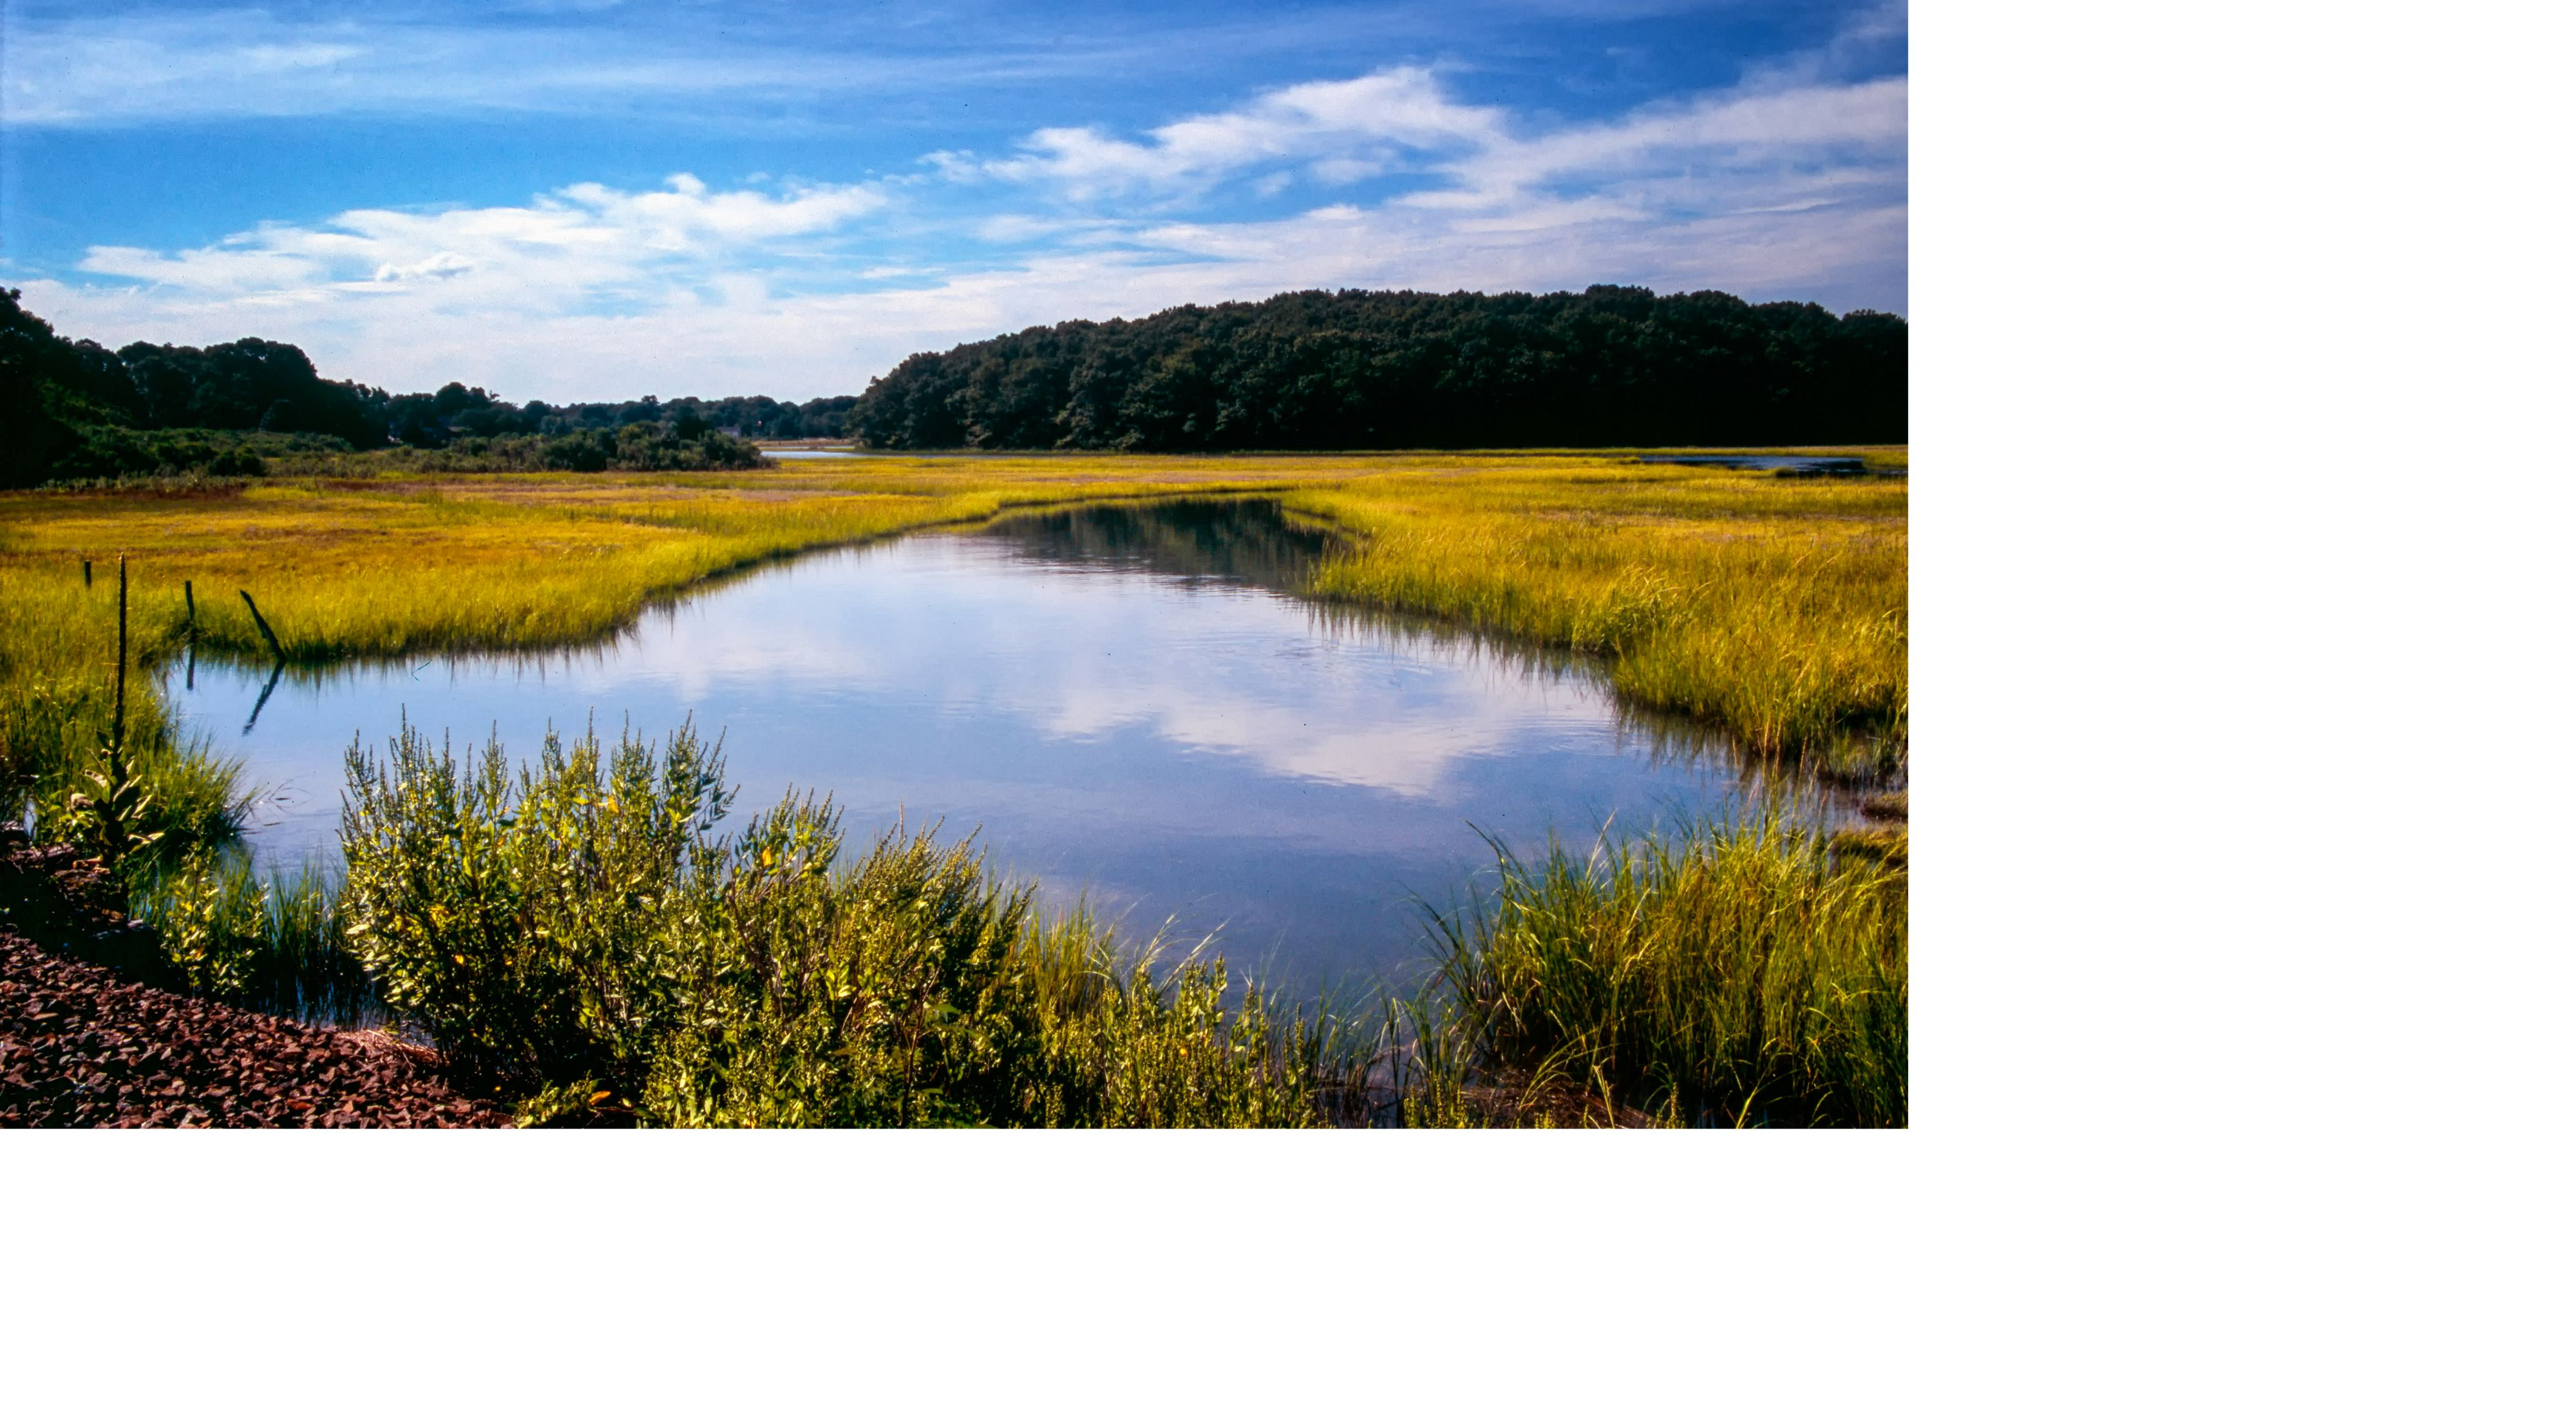 Looking out over a salt marsh with water and vegetation in view.